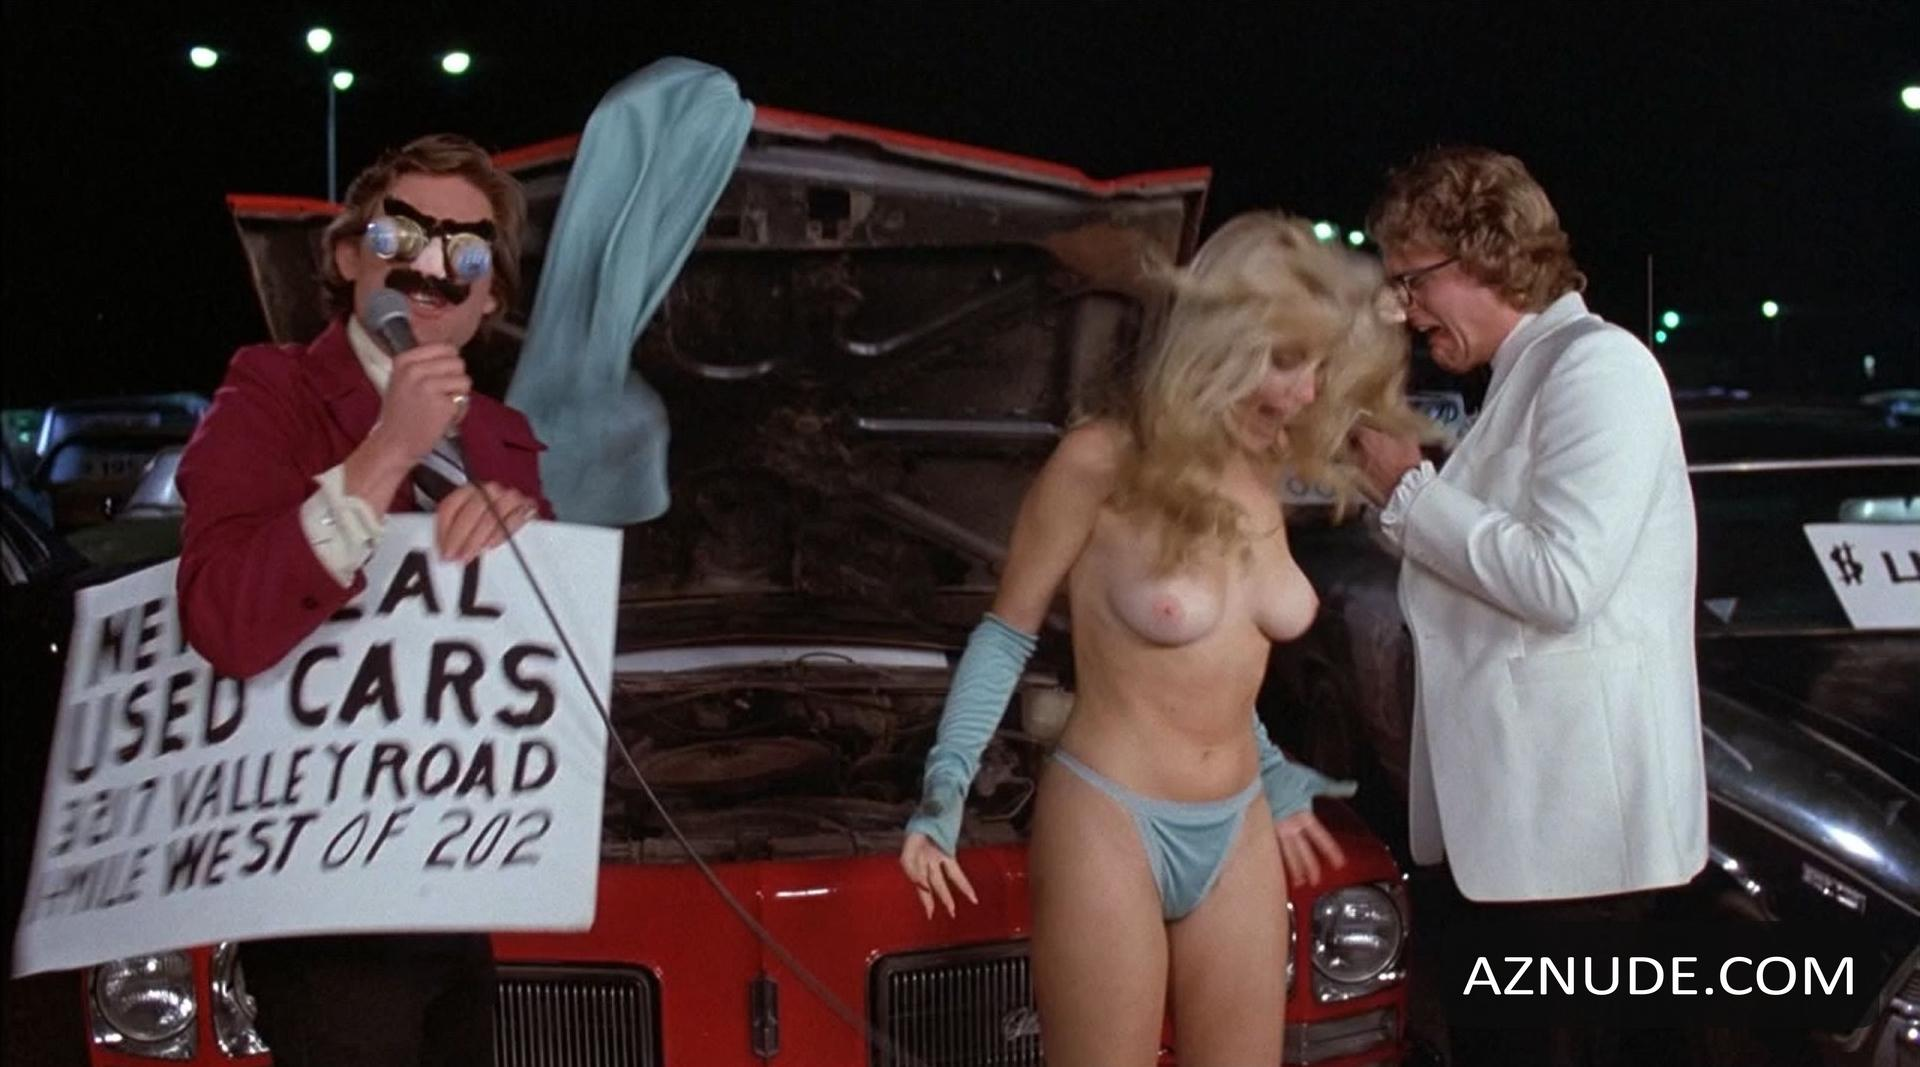 from Keegan naked cars the movie